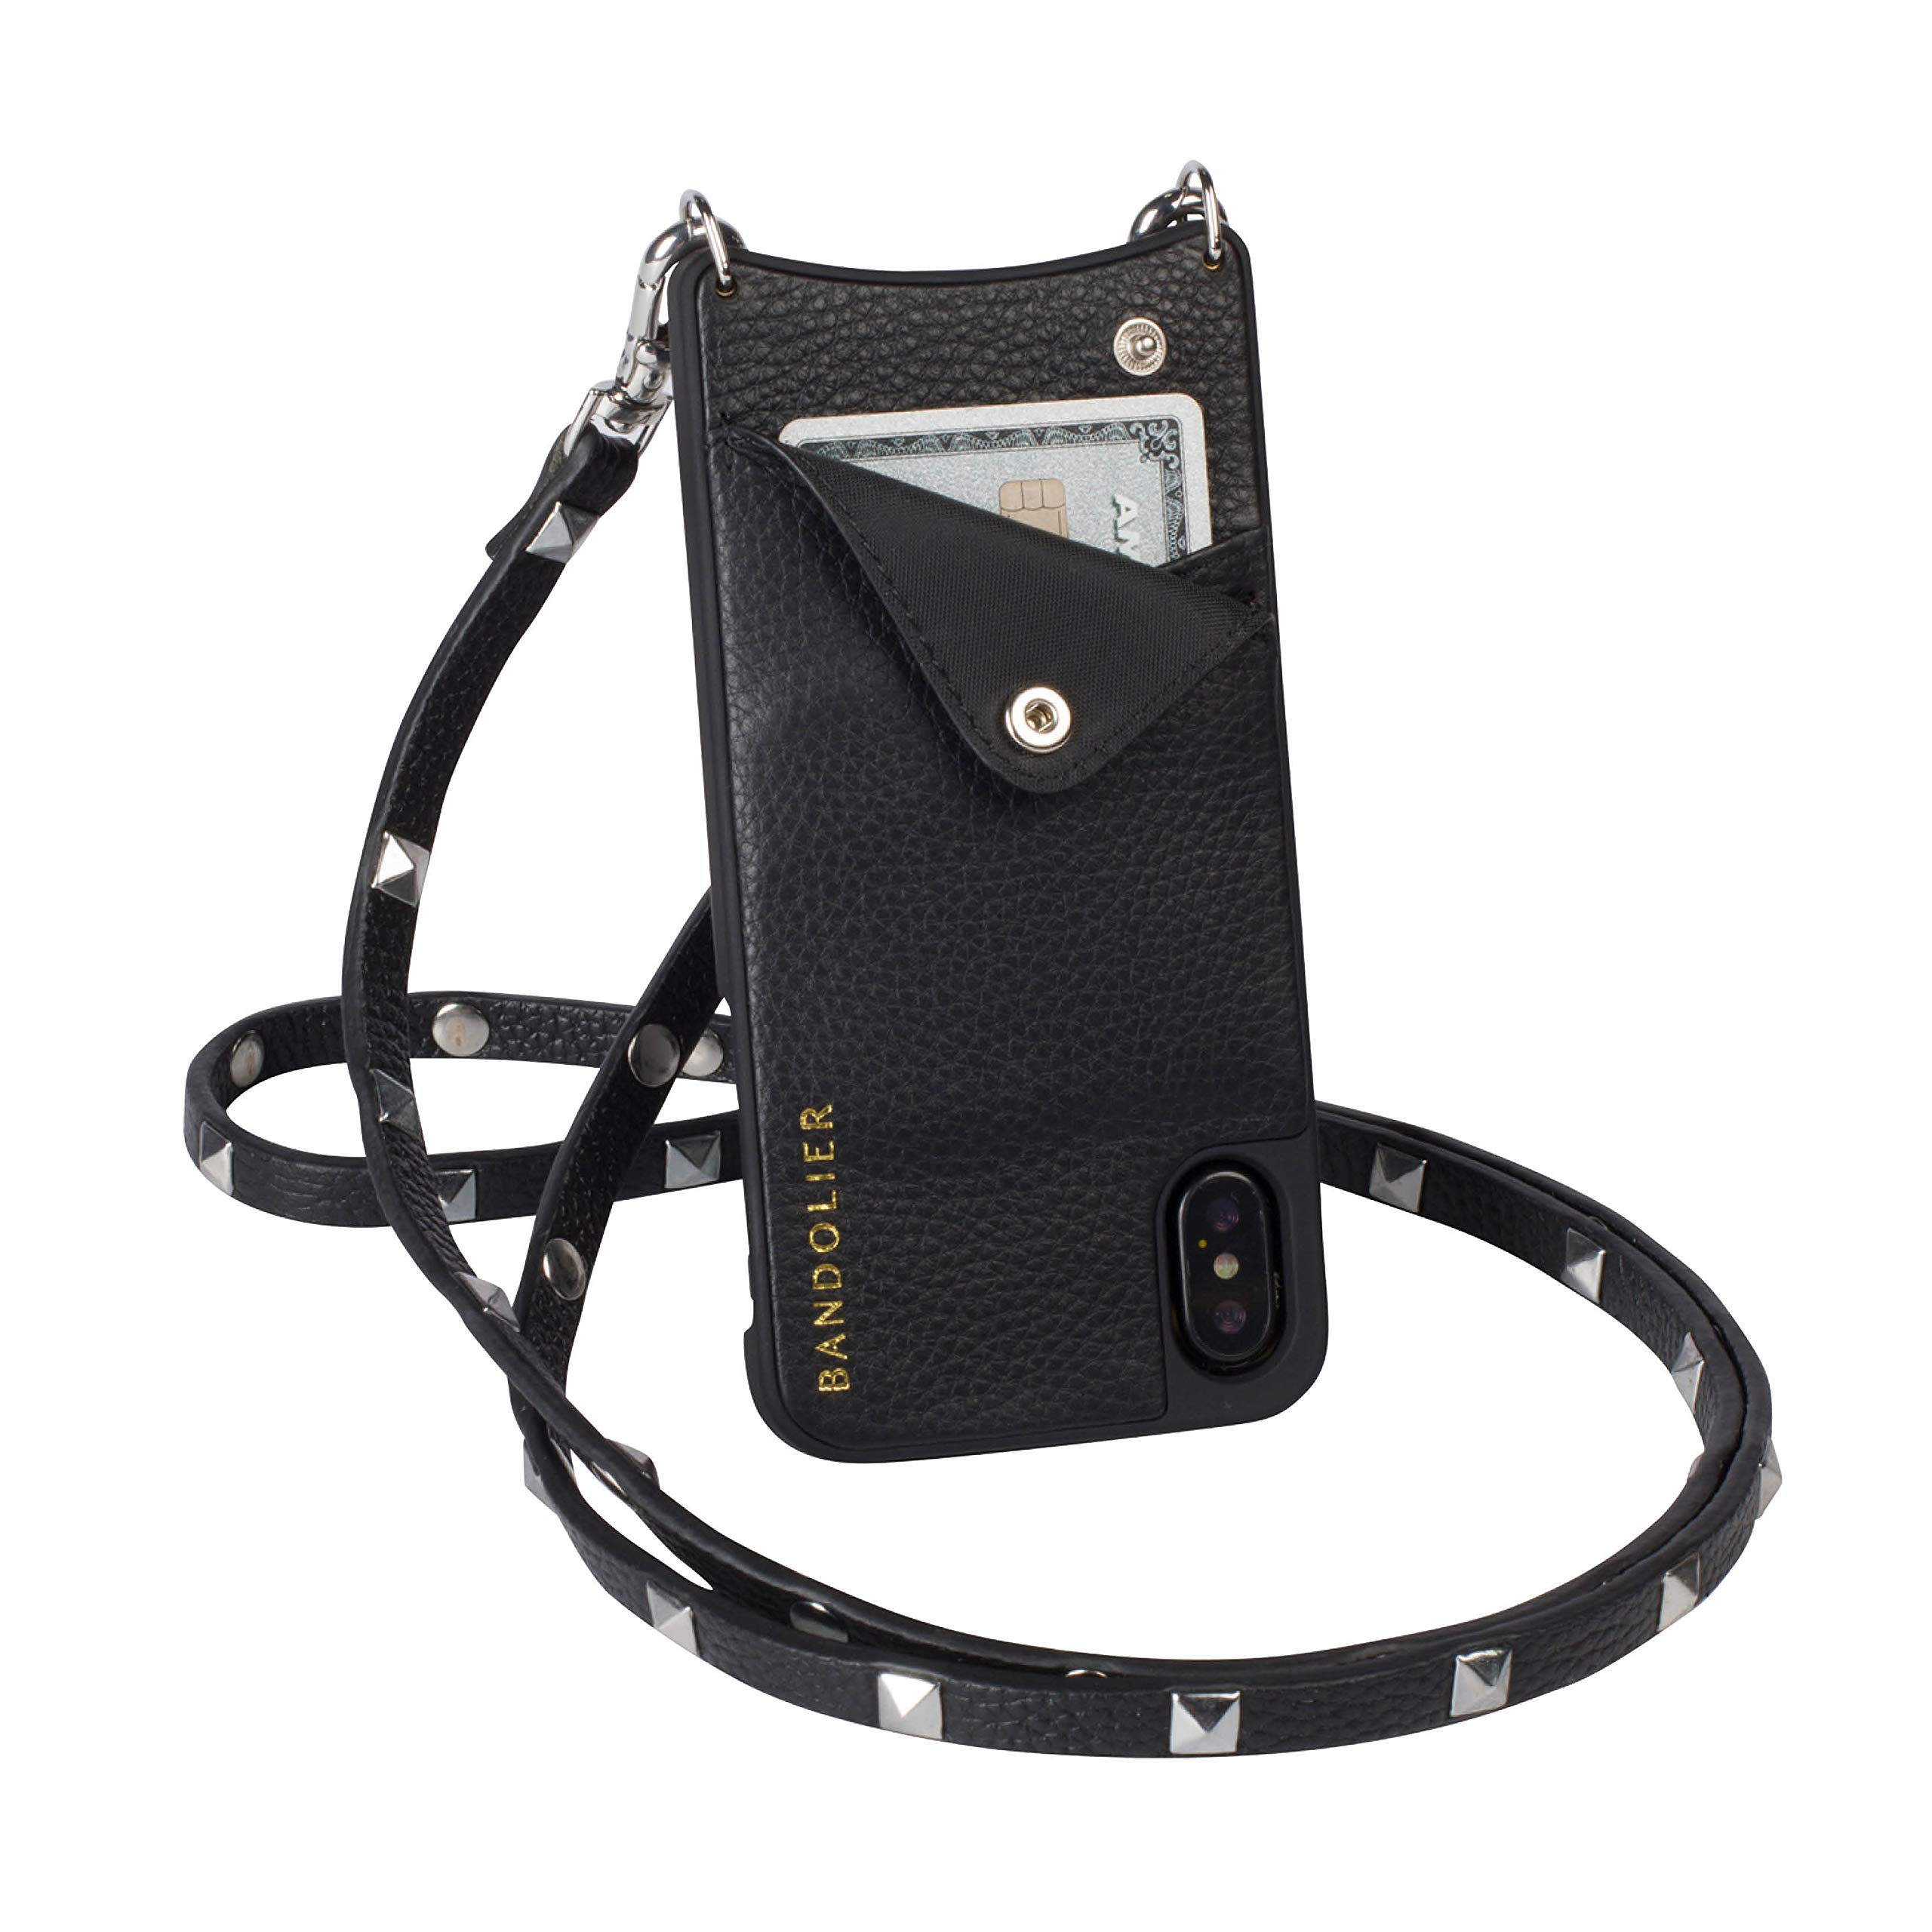 Bandolier Sarah Crossbody Phone Case and Wallet